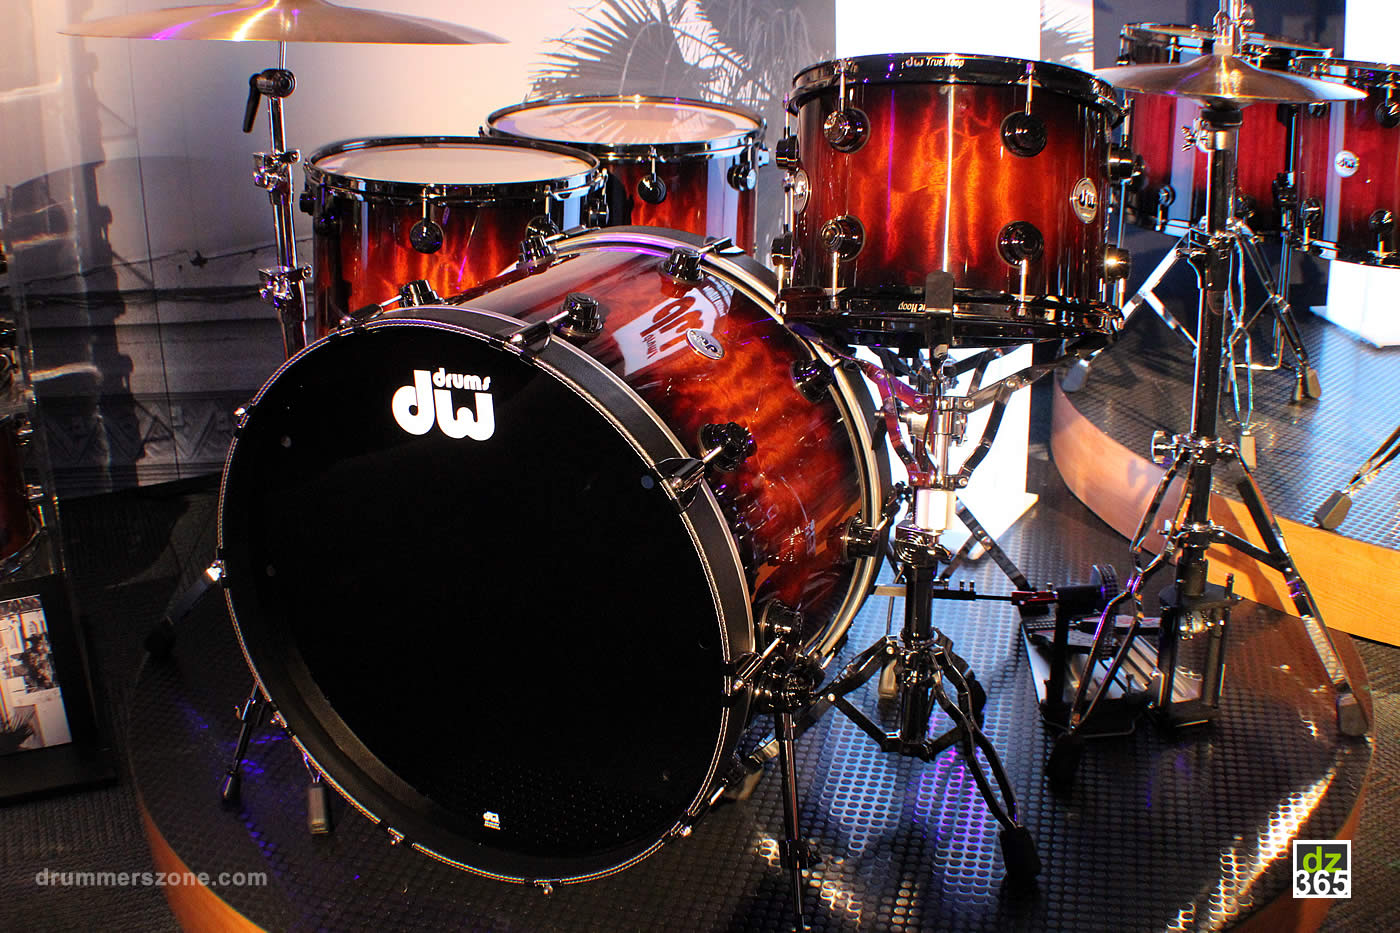 drummerszone nachrichten the dw special exotic and pure